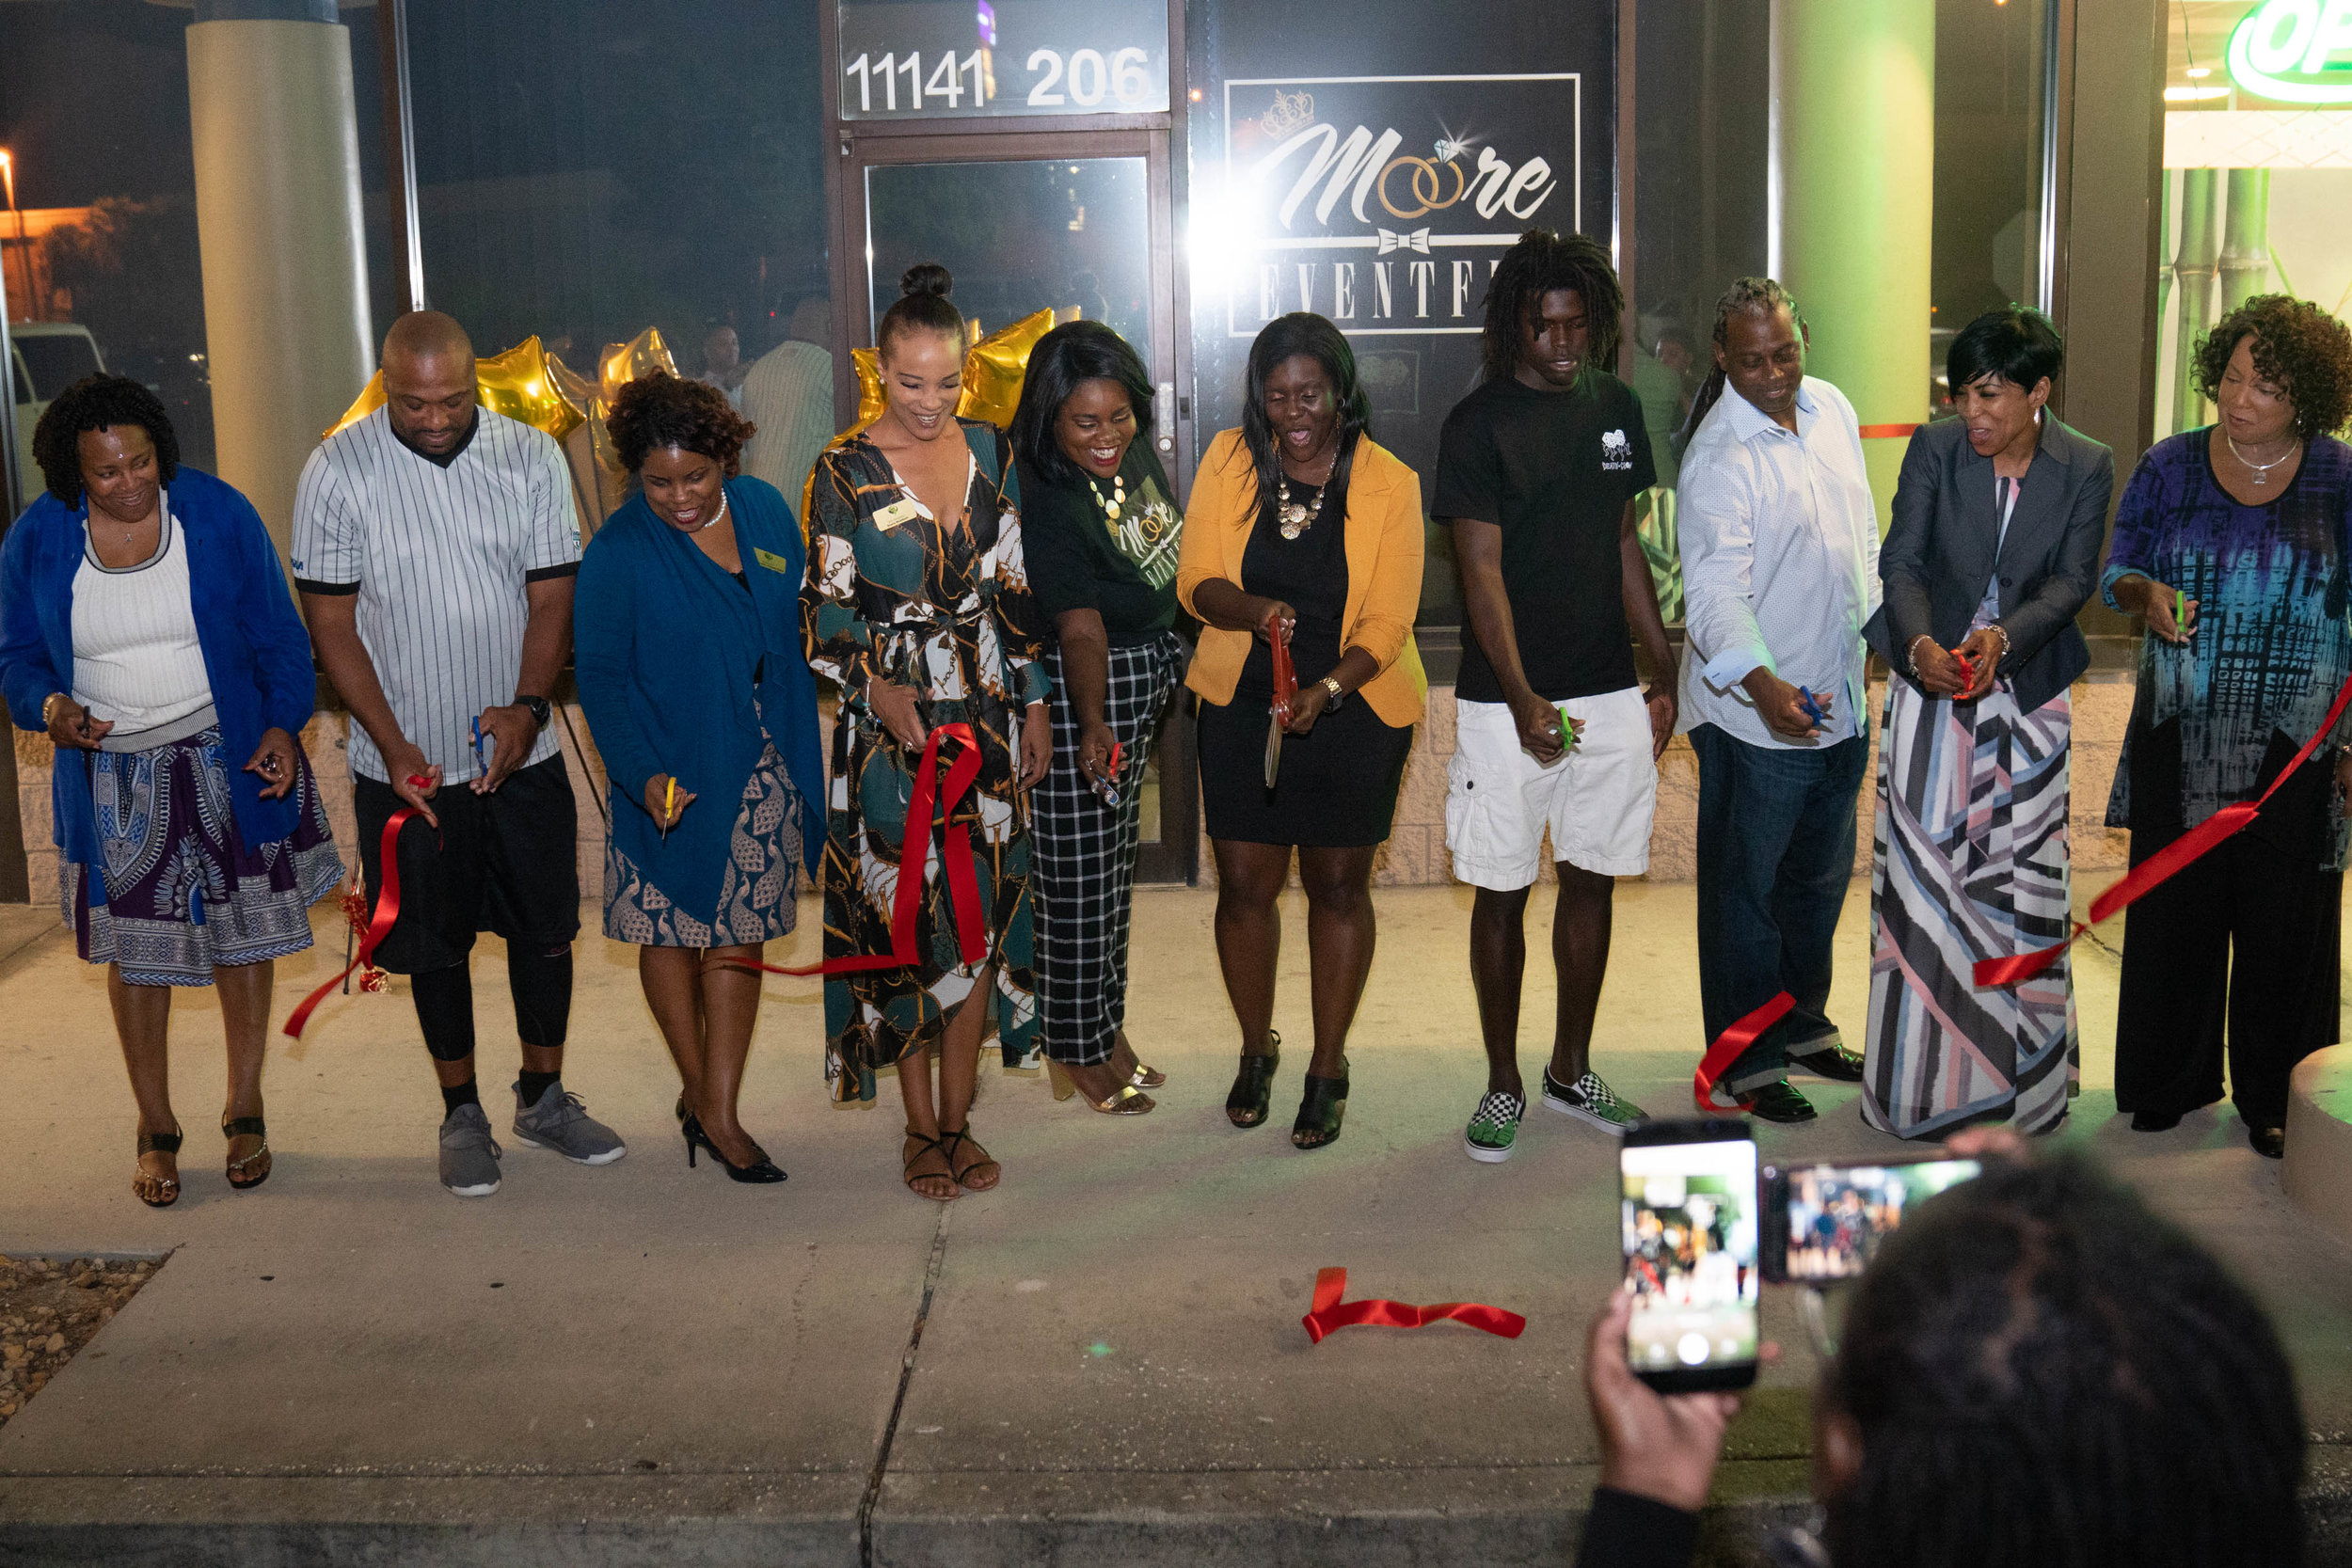 MOORE EVENTFUL RIBBON CUTTING